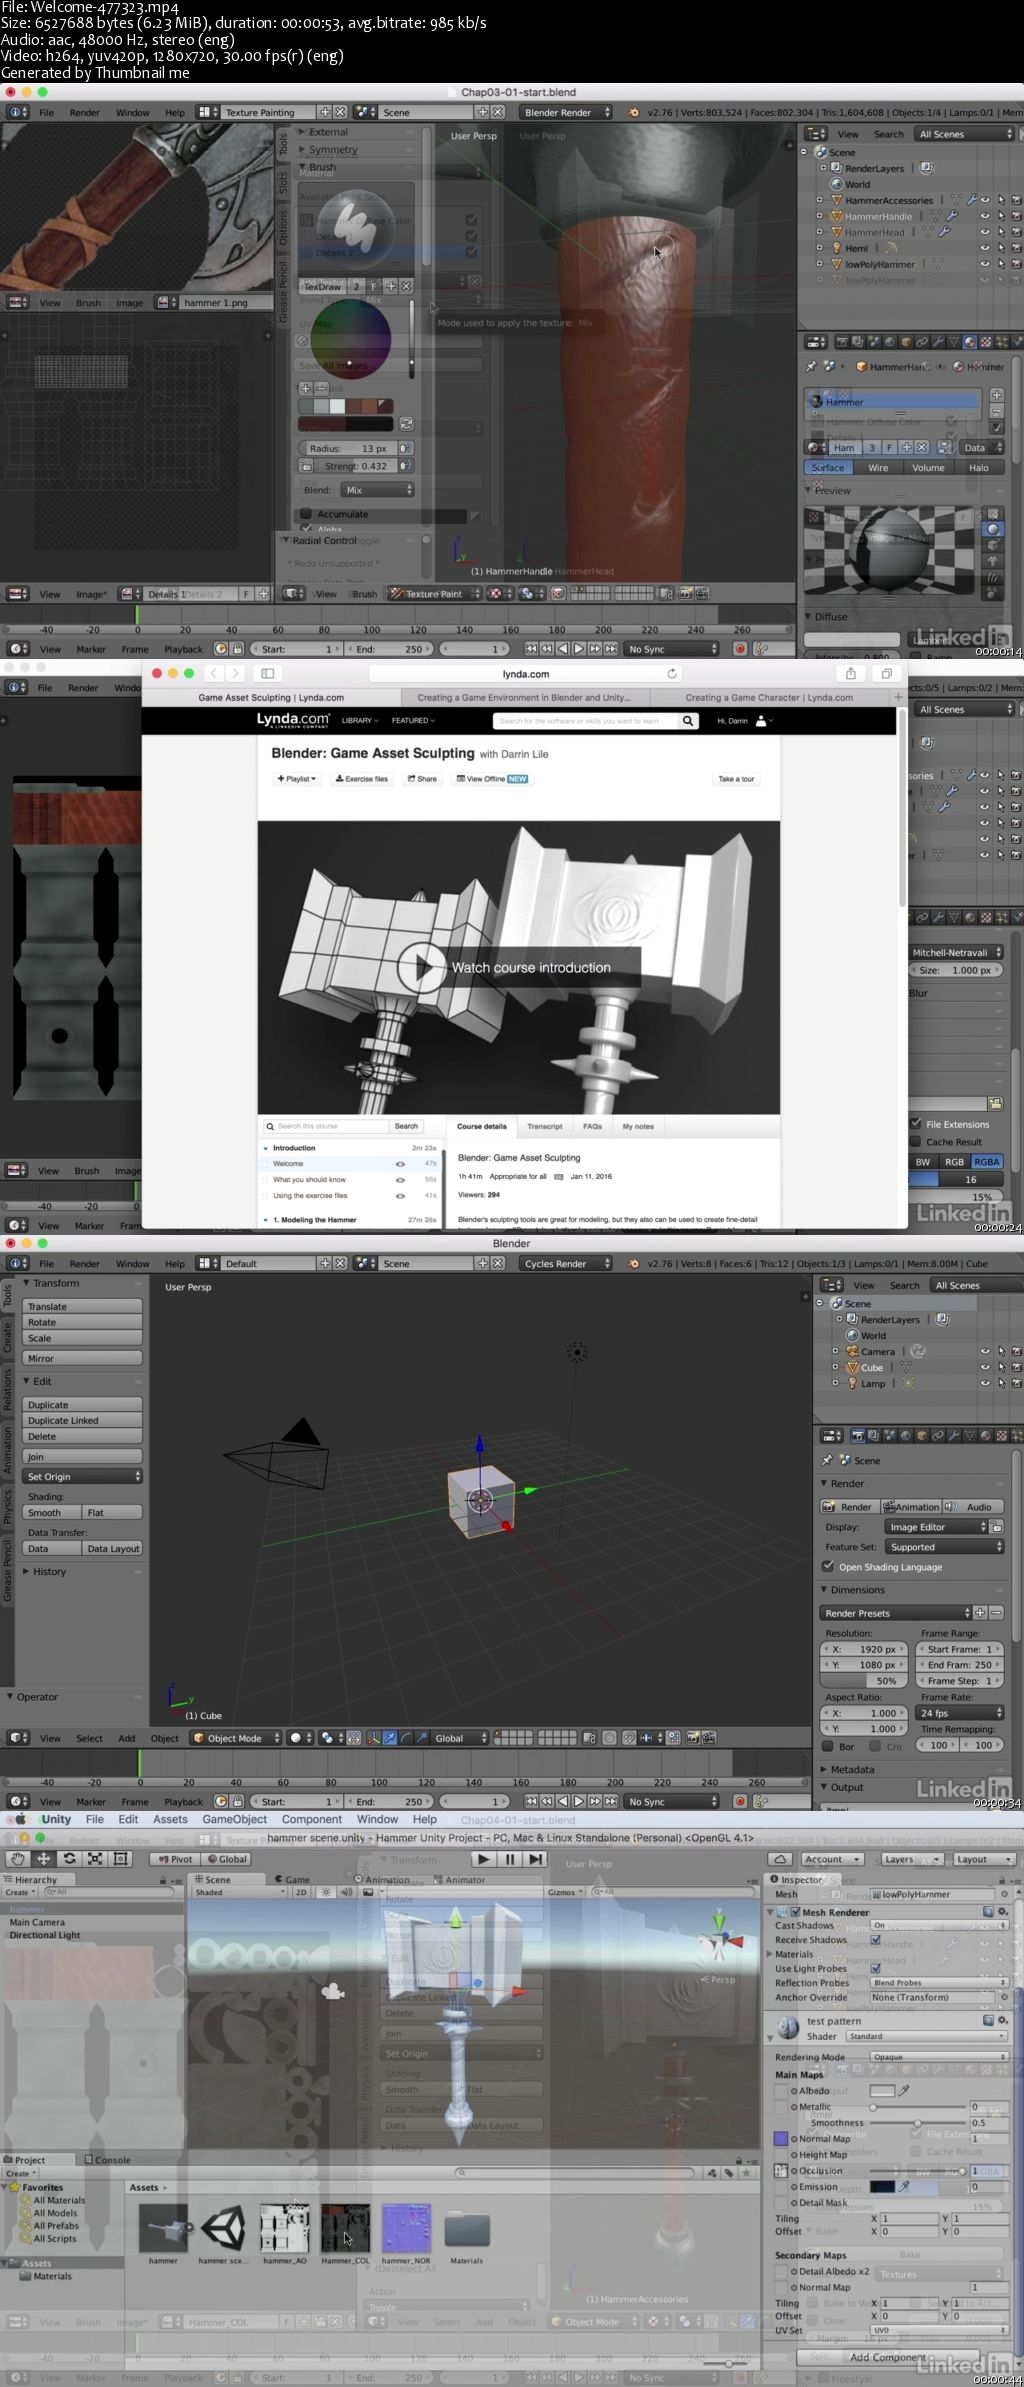 Lynda - Blender: Game Asset Textures